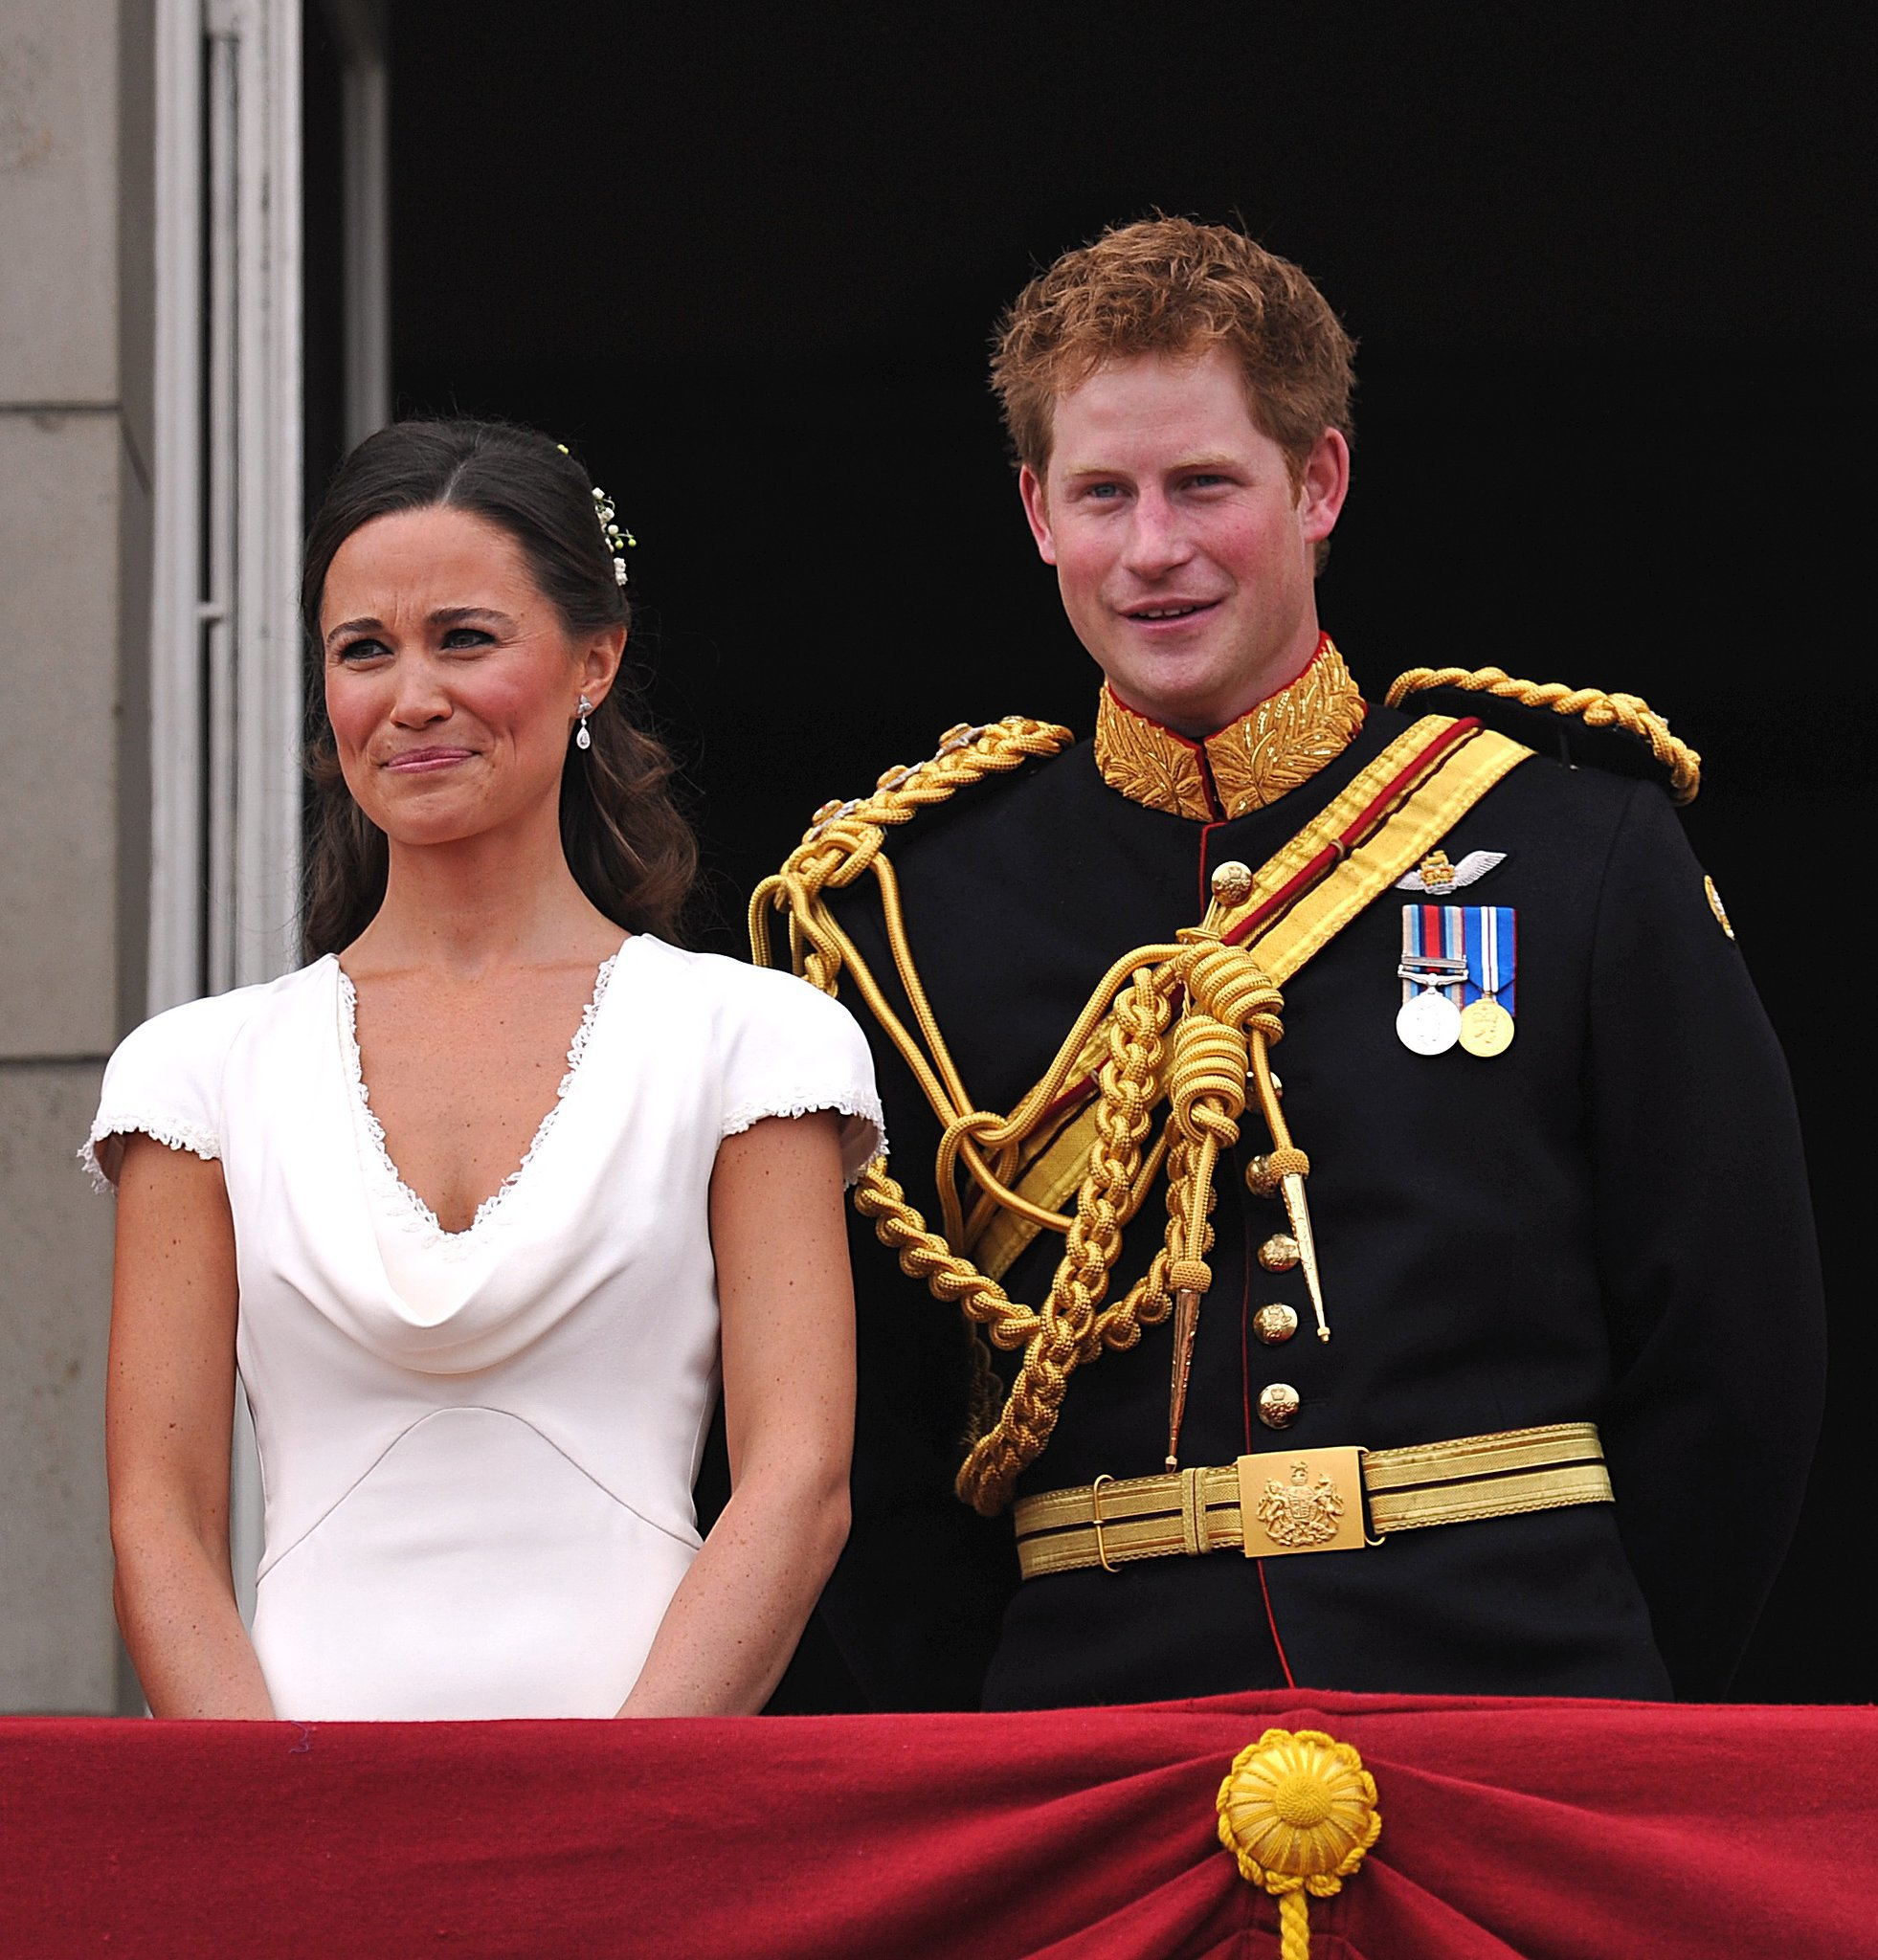 Best man Harry presumably cracked a joke to an unamused maid of honor, Pippa Middleton, at Prince William and Kate Middleton's wedding in April 2011.